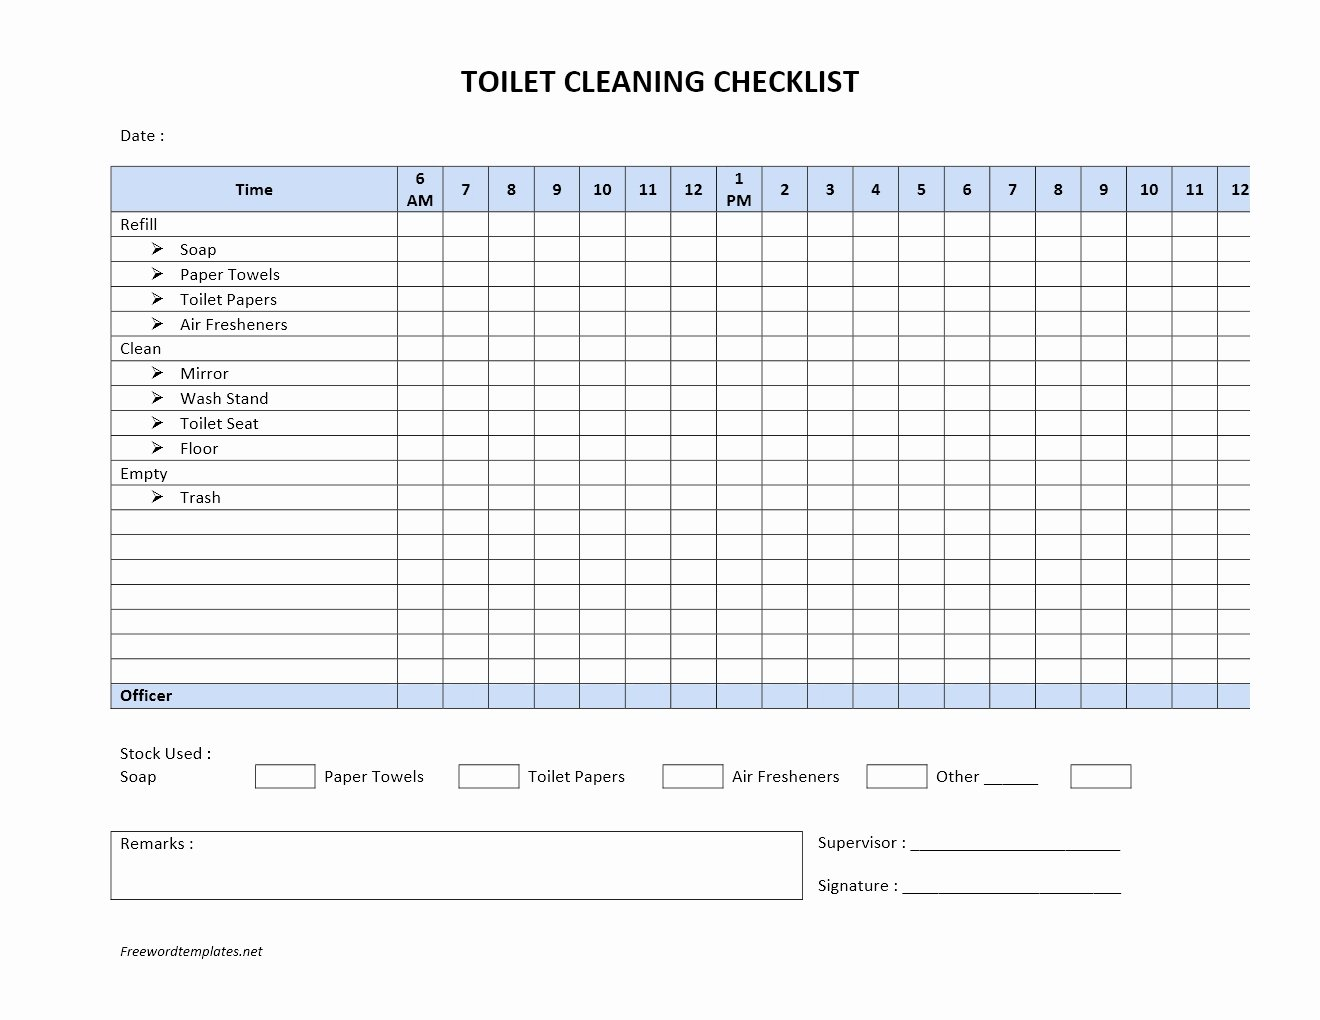 Bathroom Cleaning Schedule Template Luxury toilet Cleaning Checklist